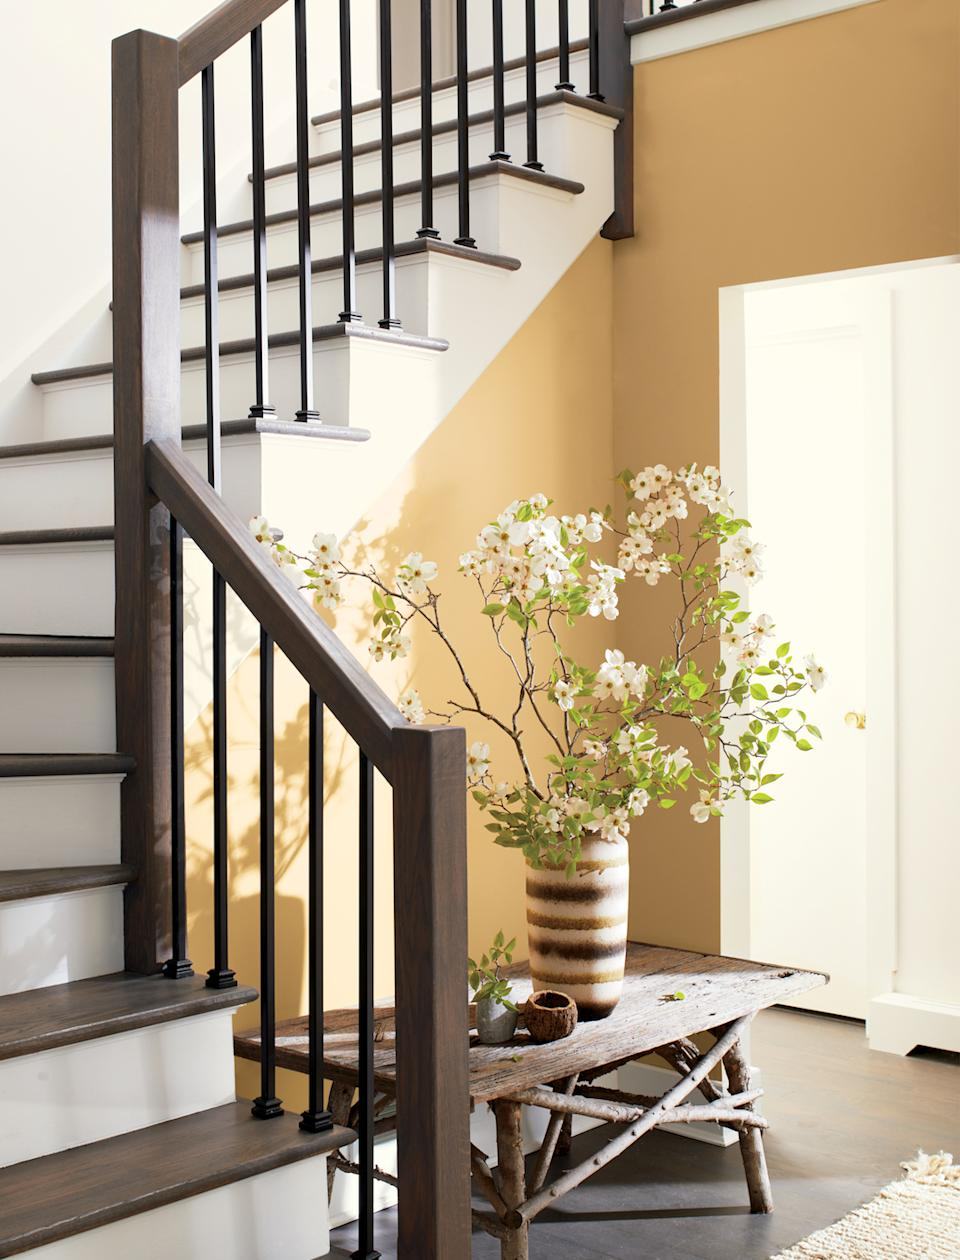 staircase ideas: wooden staircase banister